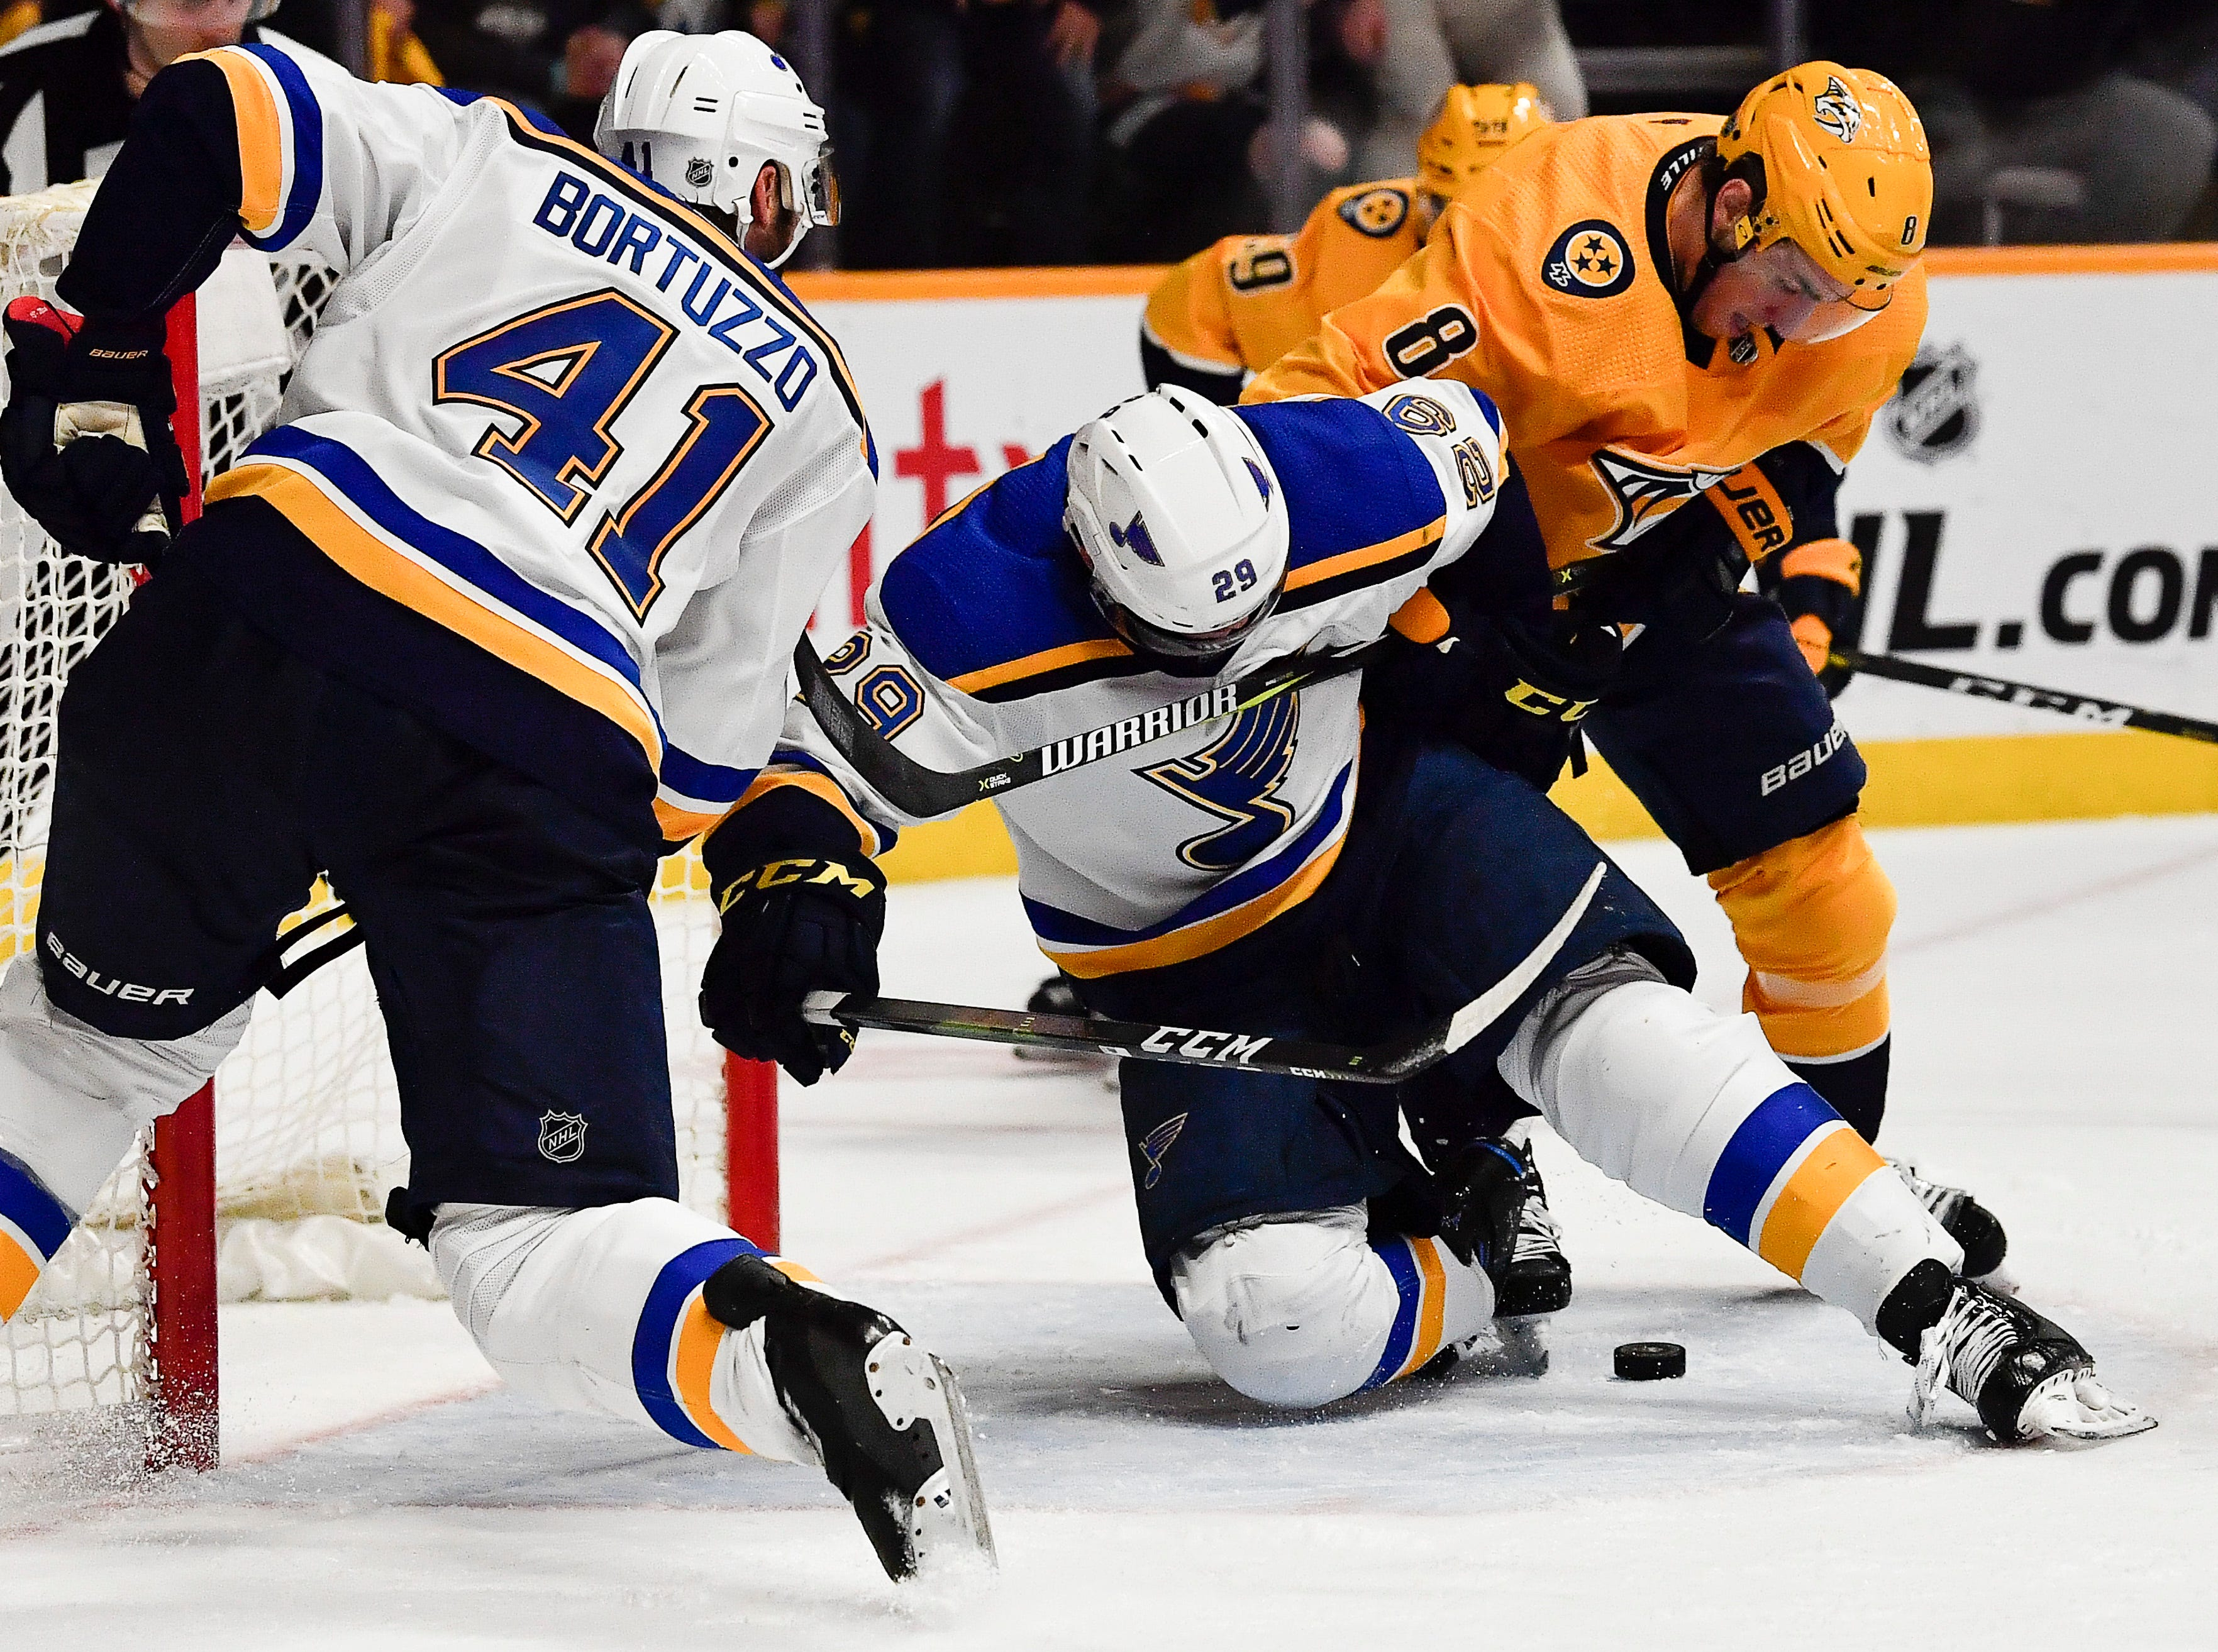 Predators center Kyle Turris (8) fights to shoot the puck past Blues defenseman Robert Bortuzzo (41) and defenseman Vince Dunn (29) during the third period at Bridgestone Arena Sunday Feb. 10, 2019 in Nashville, Tenn.